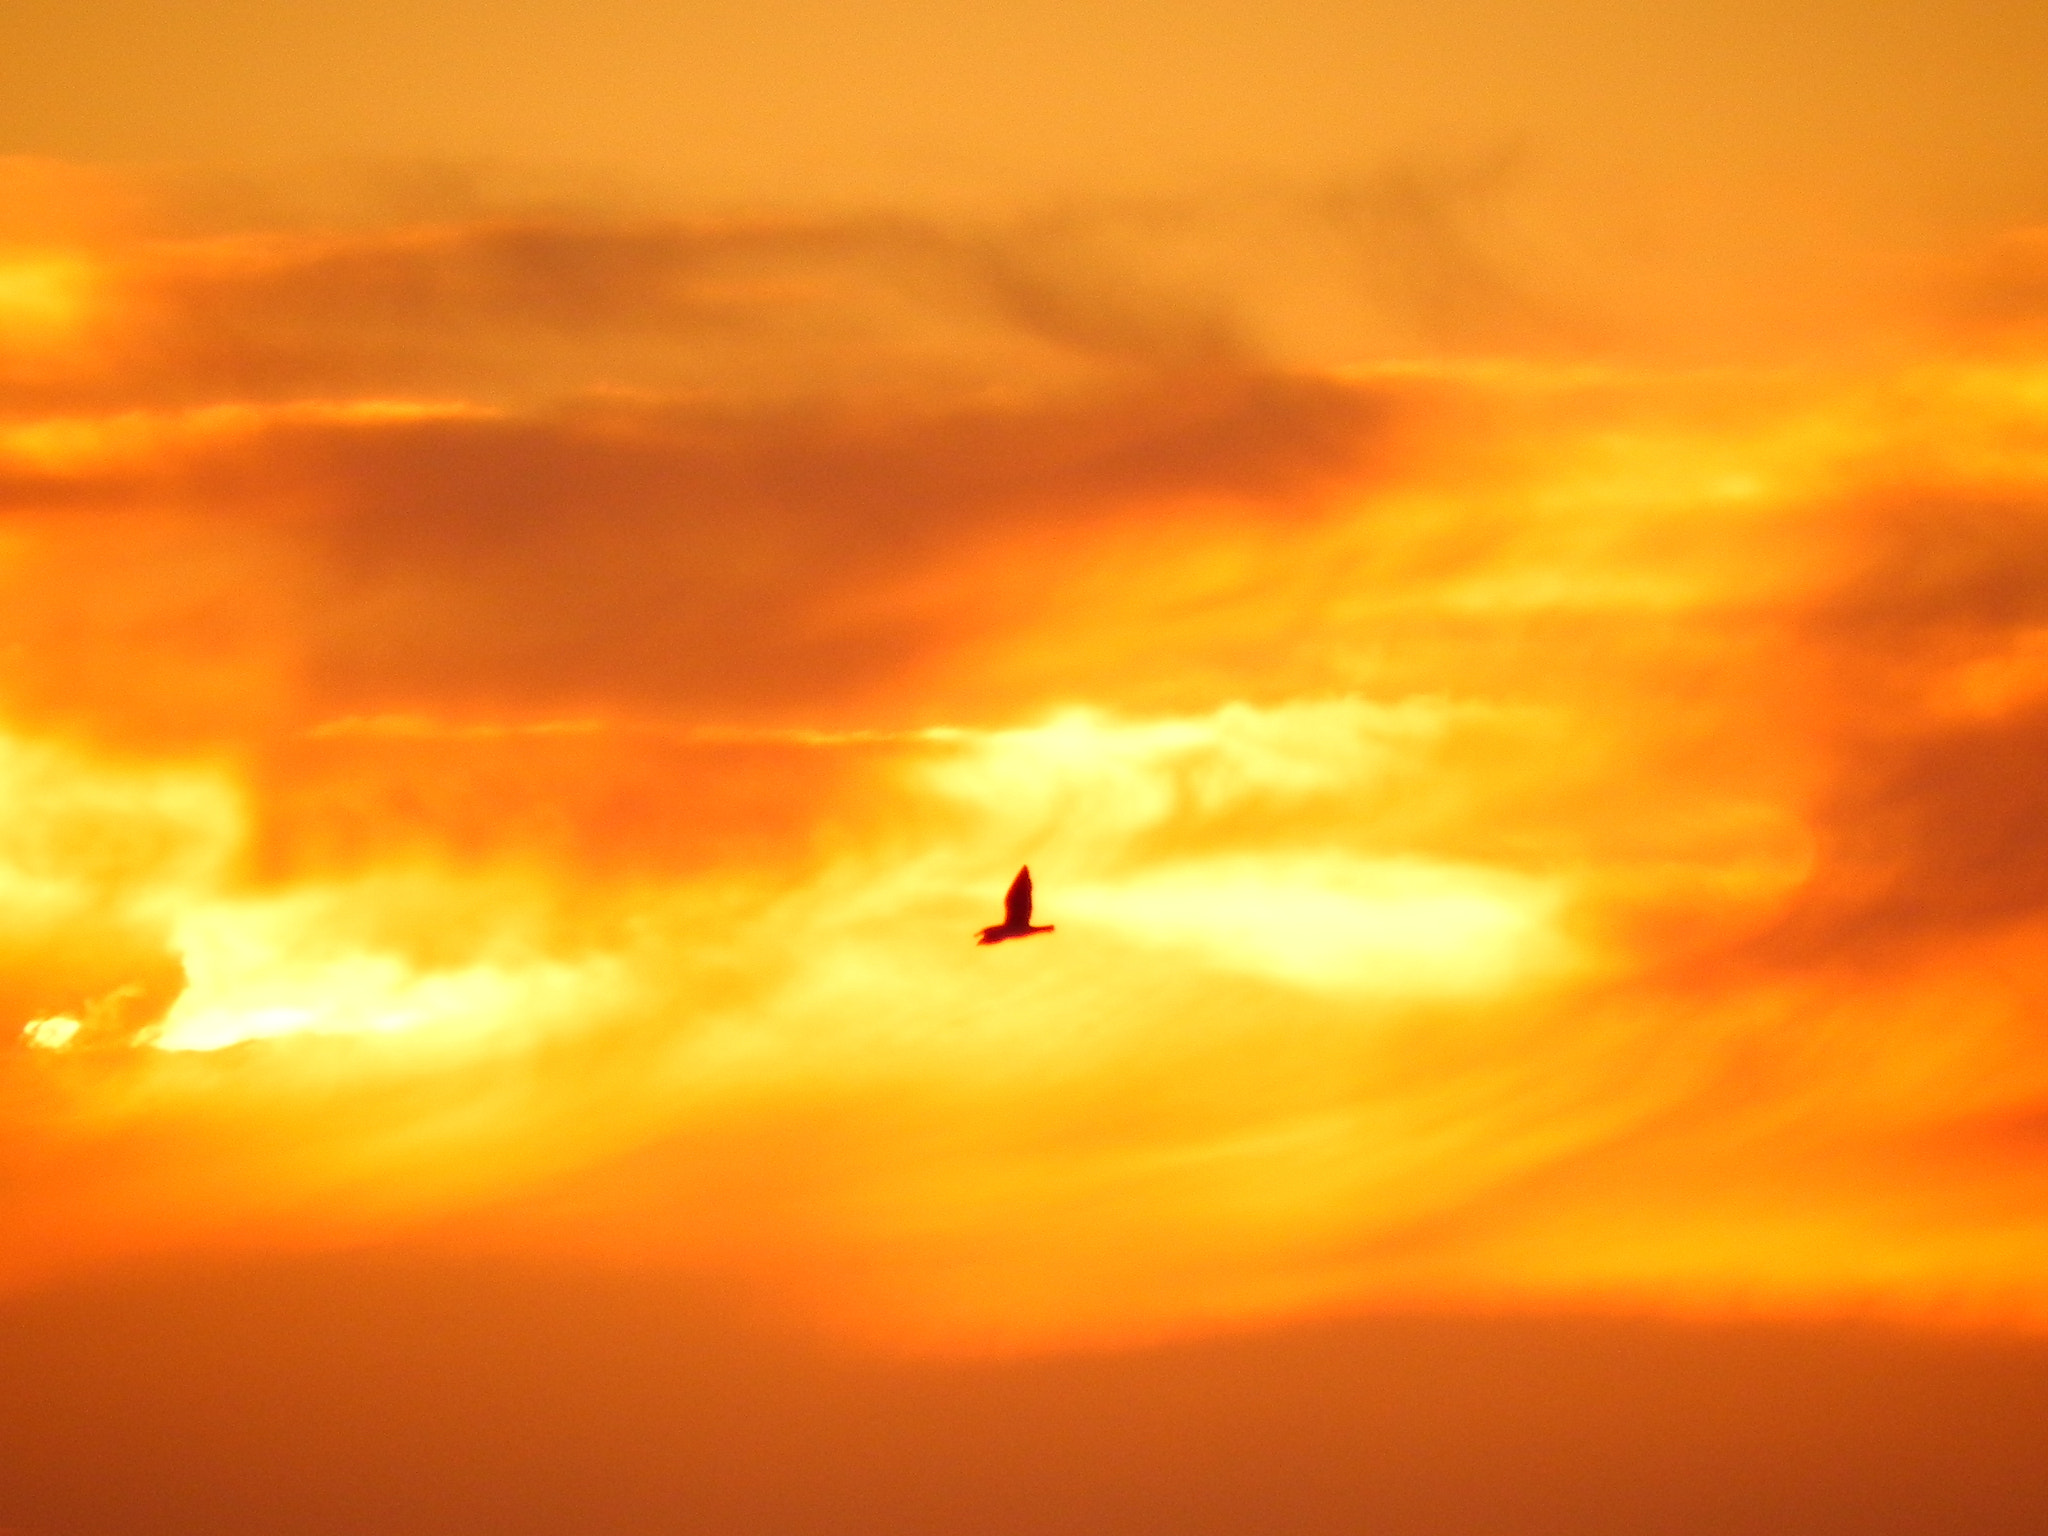 Photograph Seagull by Enzo Mardones on 500px